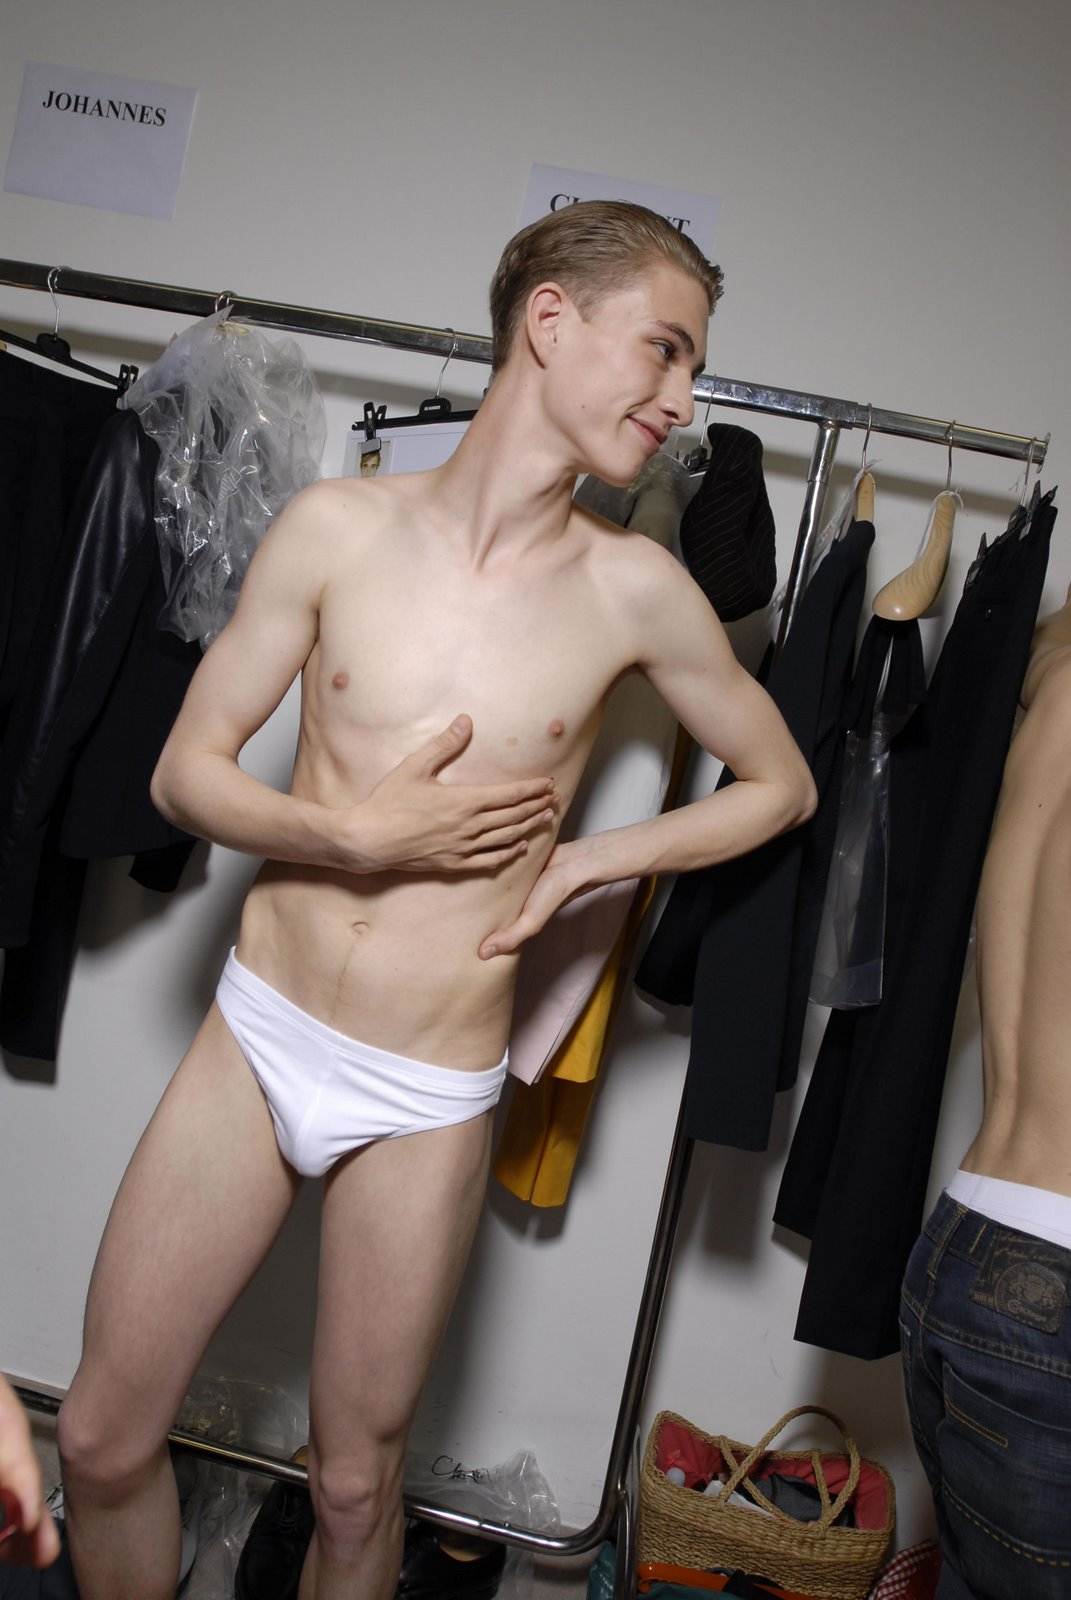 from Conor skiny nude model man